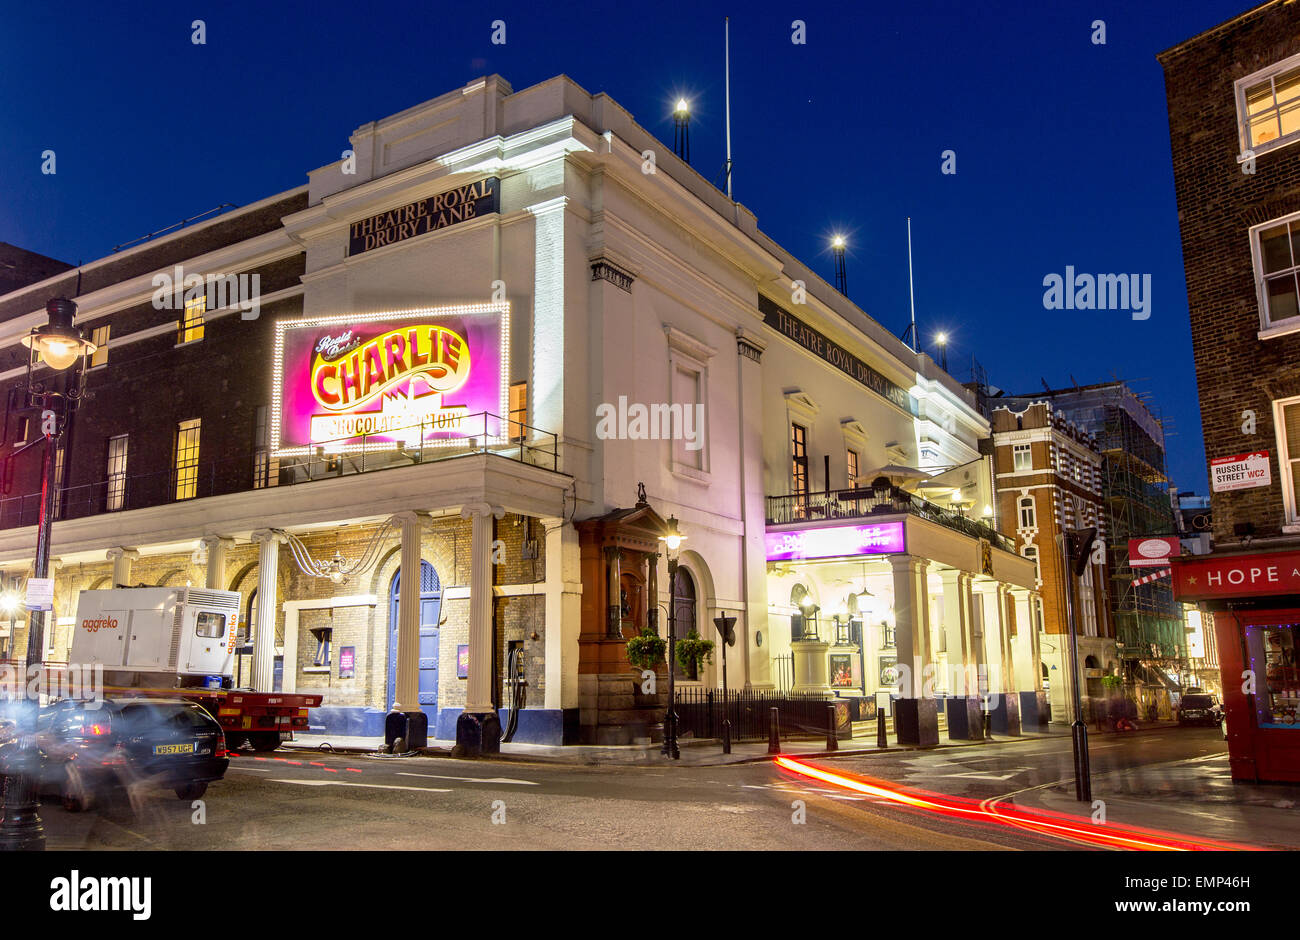 Theatre Royal Drury Lane at Night London UK Stock Photo